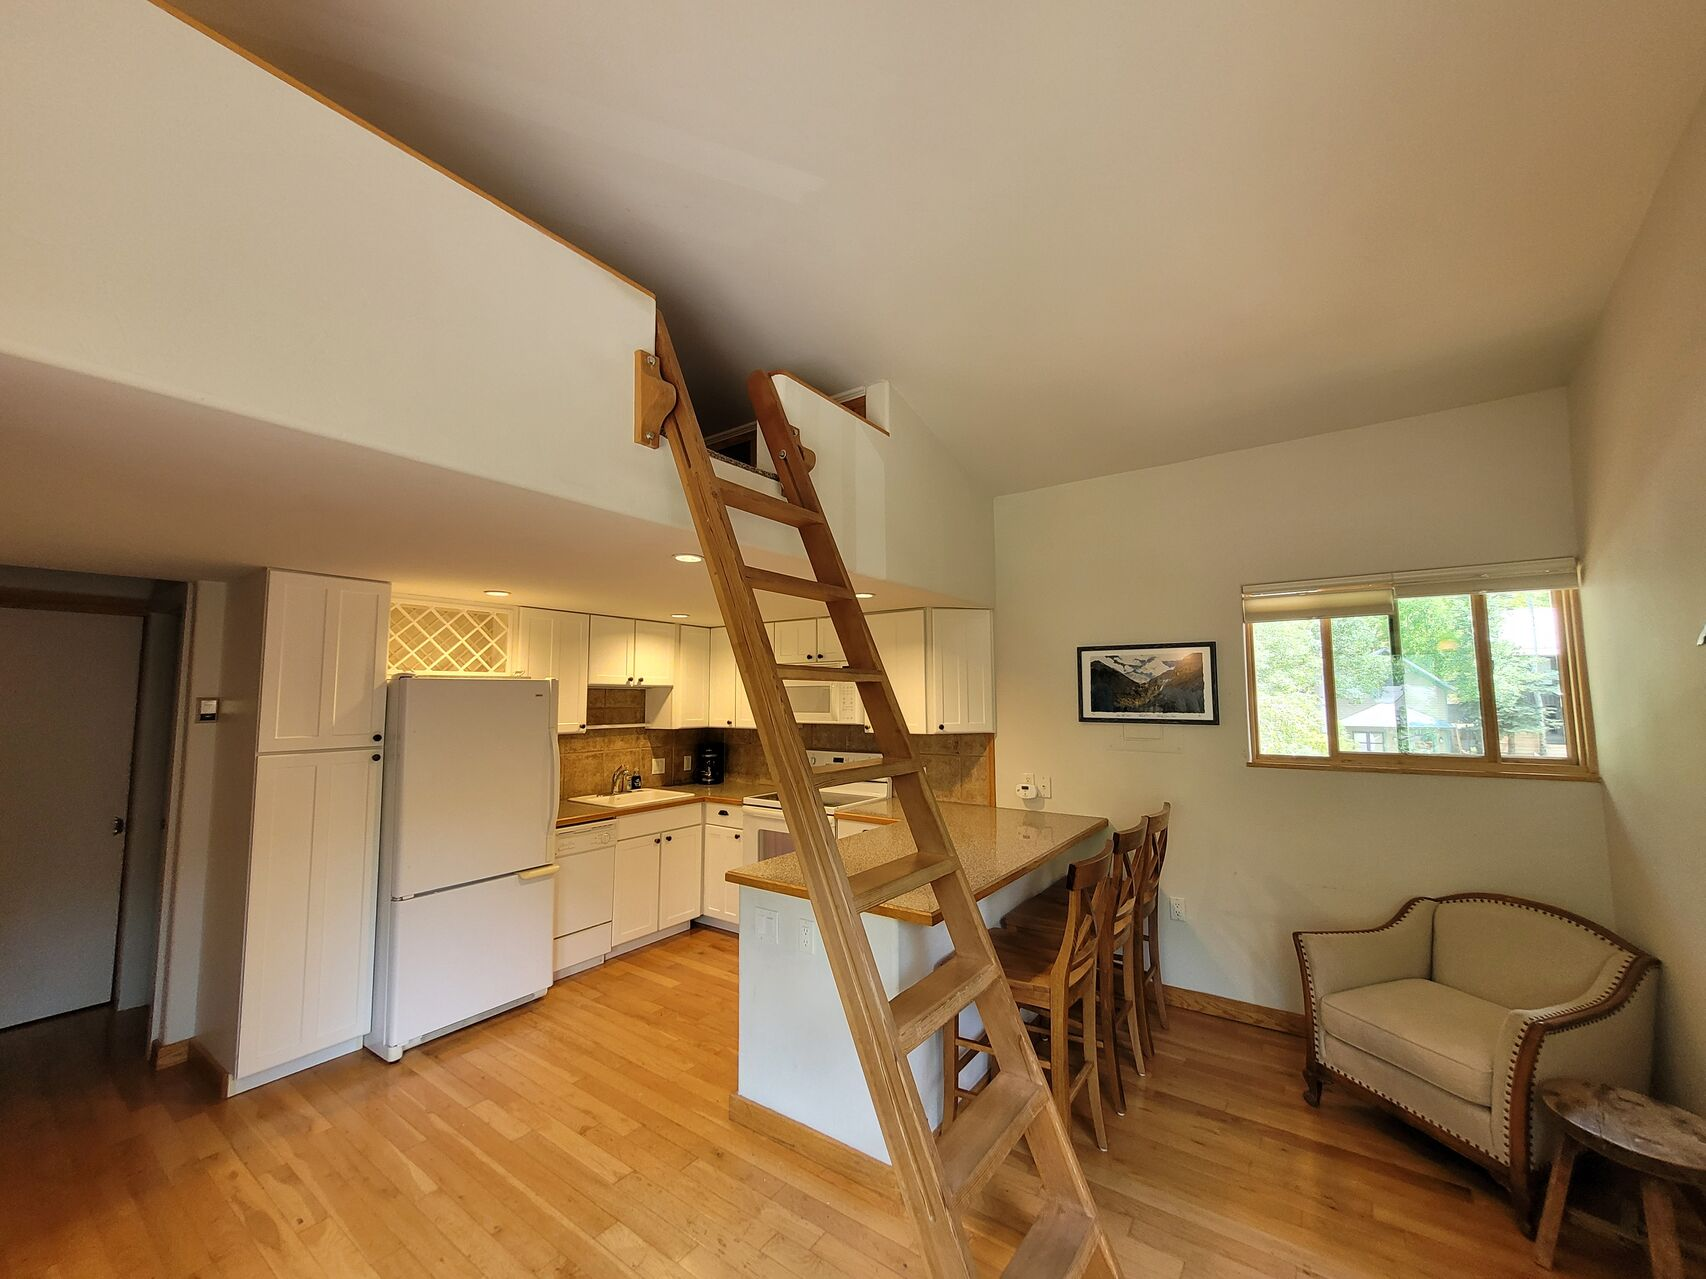 Living area with wood ladder and white cabinets